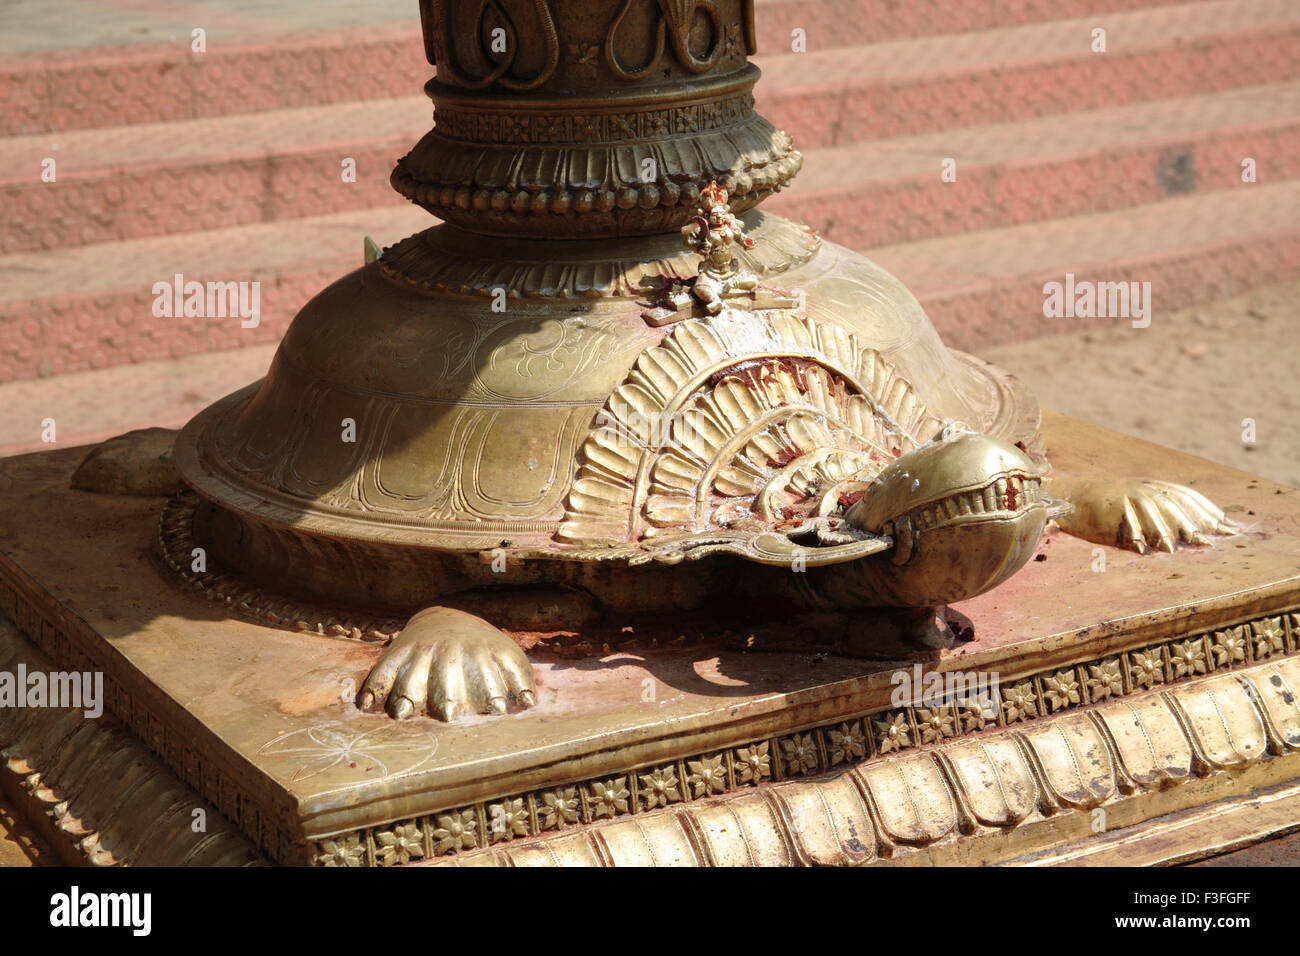 Vilakku Stock Photos  for Temple Stone Lamp  193tgx